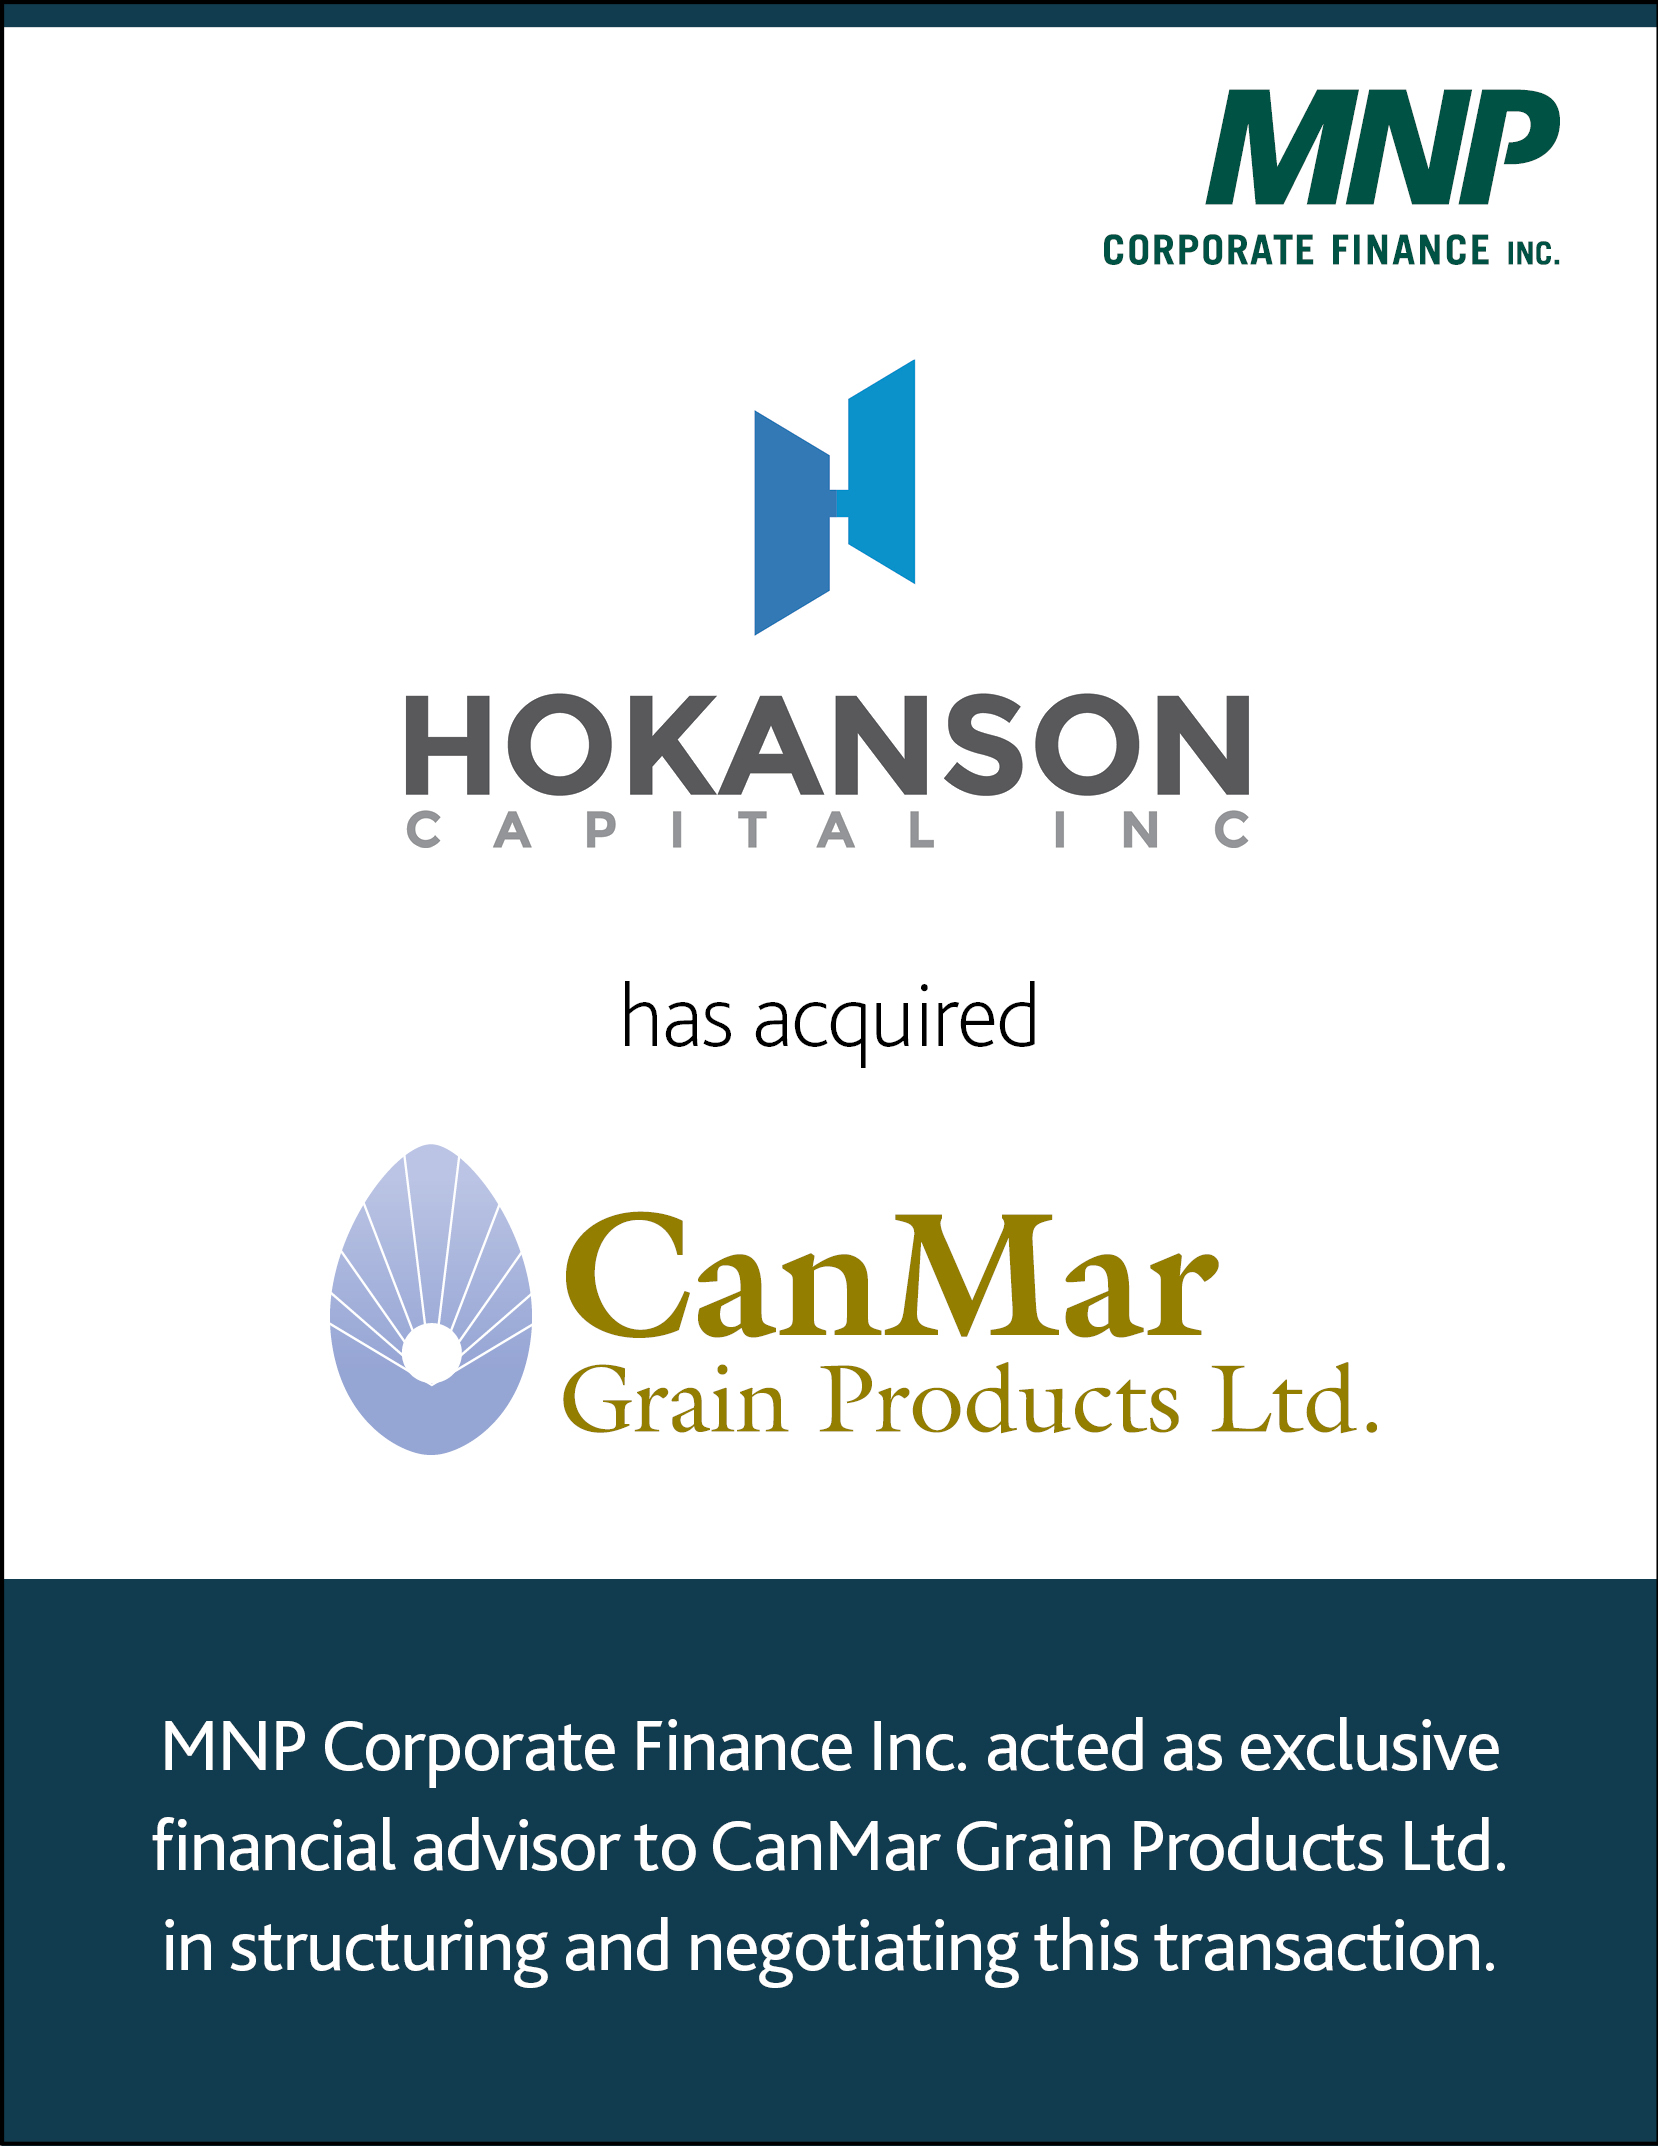 Hokanson Capital Inc. has acquired CanMar Grain Products Ltd.